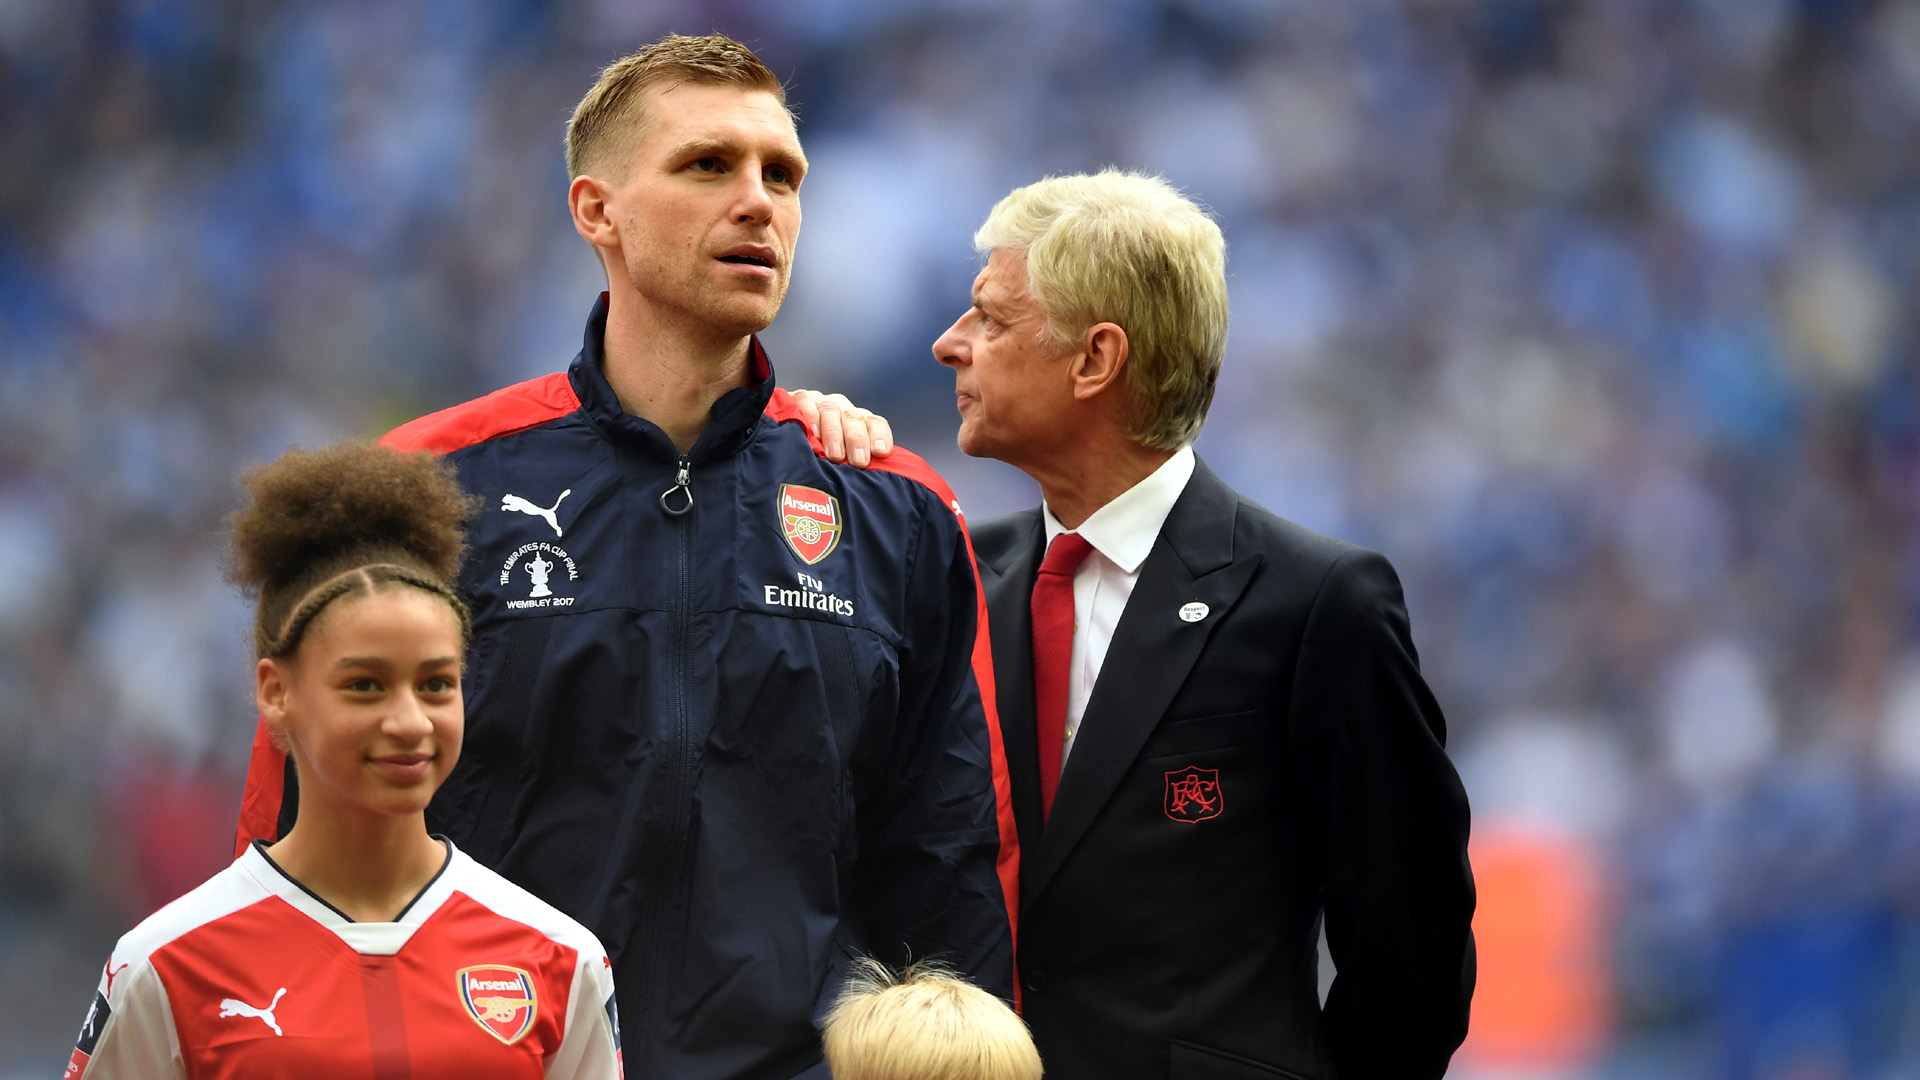 O capitão Mertesacker com o técnico Arsene Wenger (Photo by Laurence Griffiths/Getty Images)